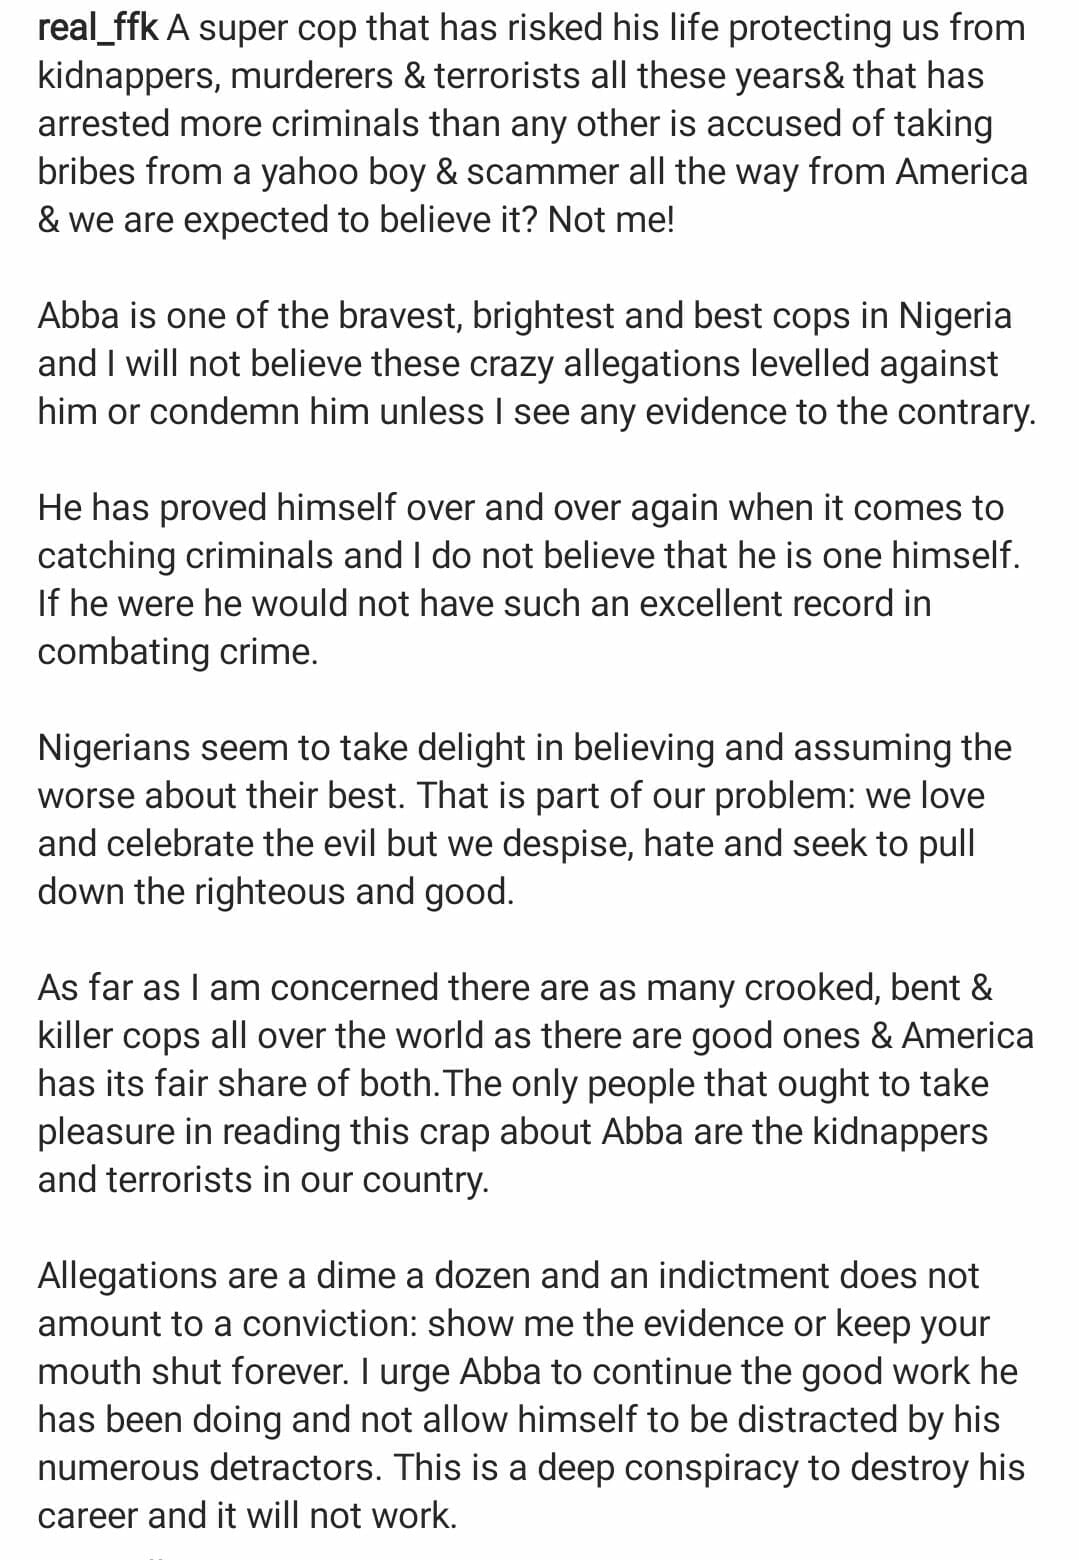 Fani-Kayode defends Abba Kyari after his indictment in the Hushpuppi fraud case